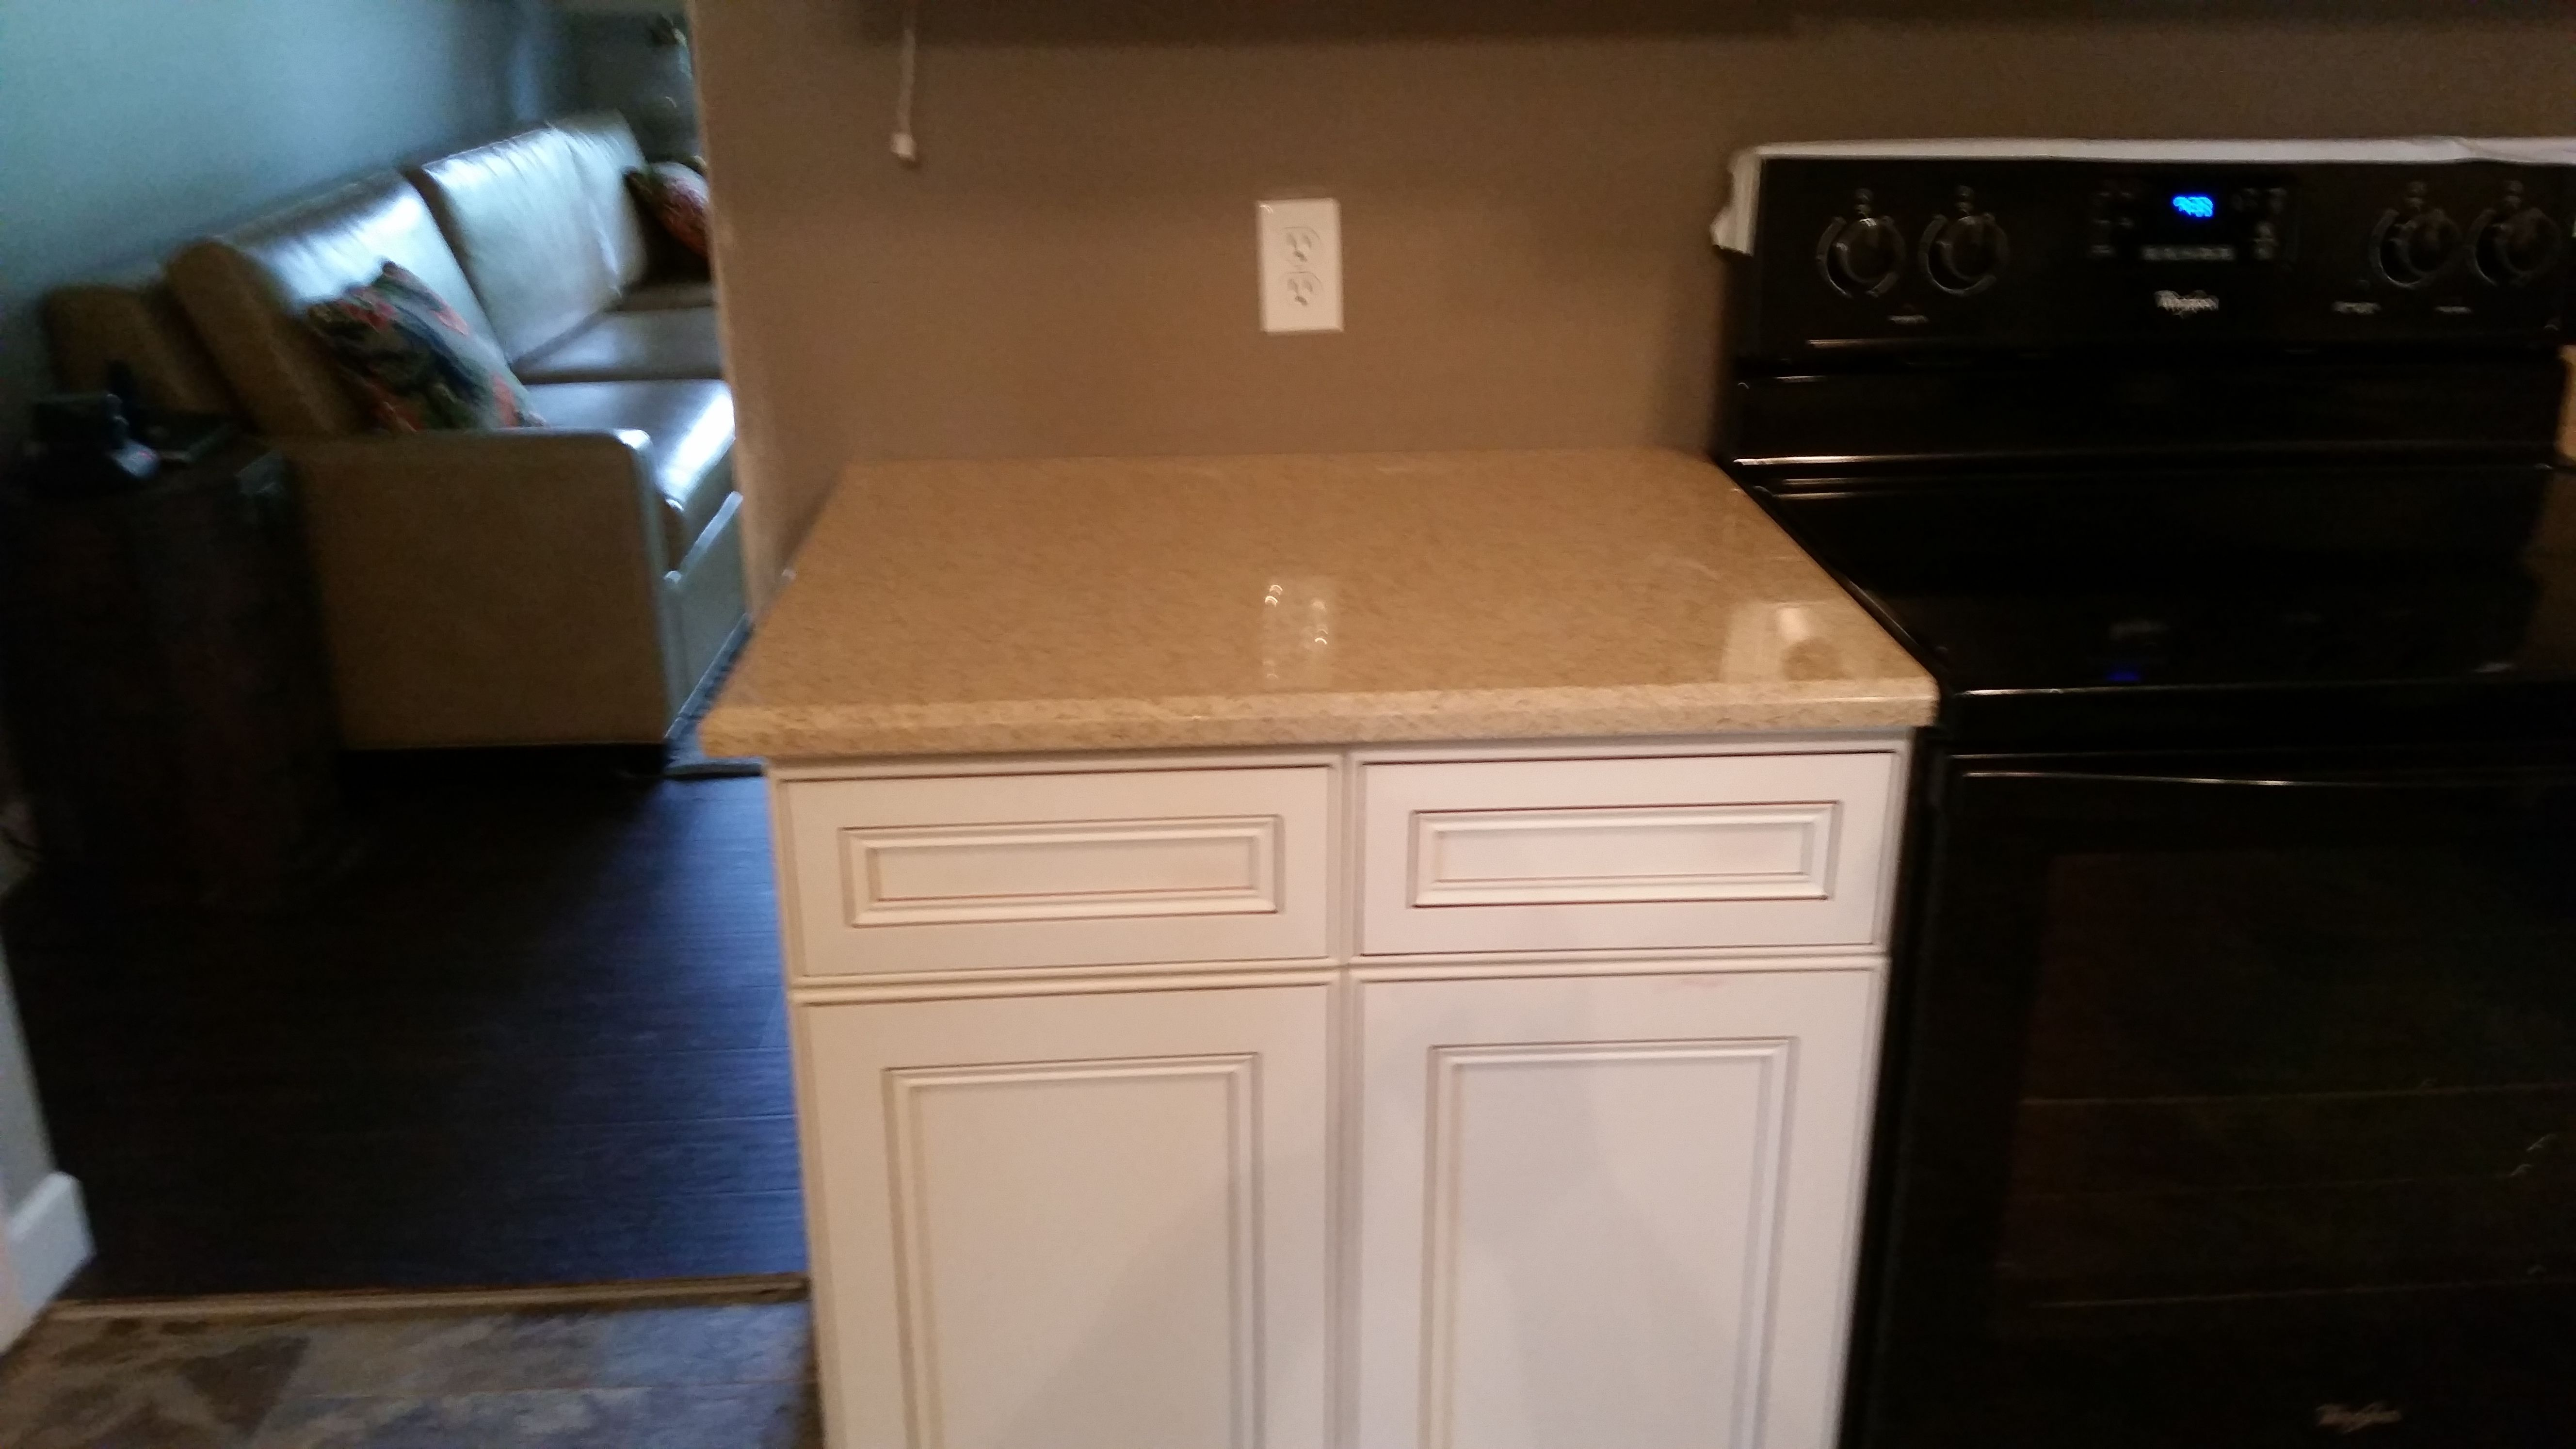 Venetian Avorio Hanstone Quartz Kitchen Countertop Install For The  Underdown Family. Knoxvilleu0027s Stone Interiors.